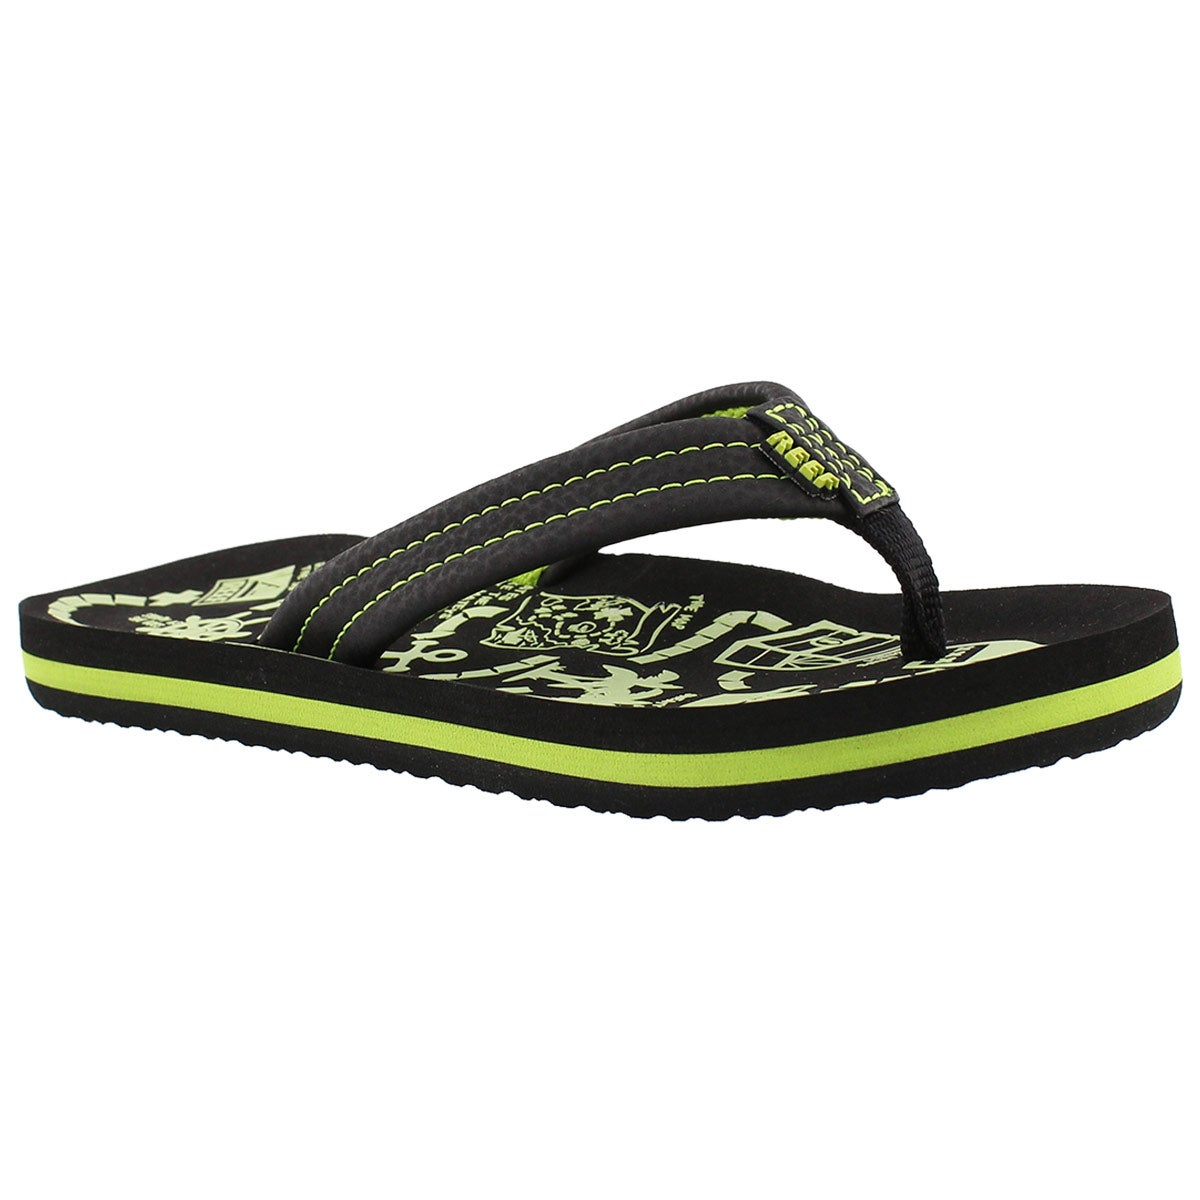 Boys' AHI GLOW black/green flip flops